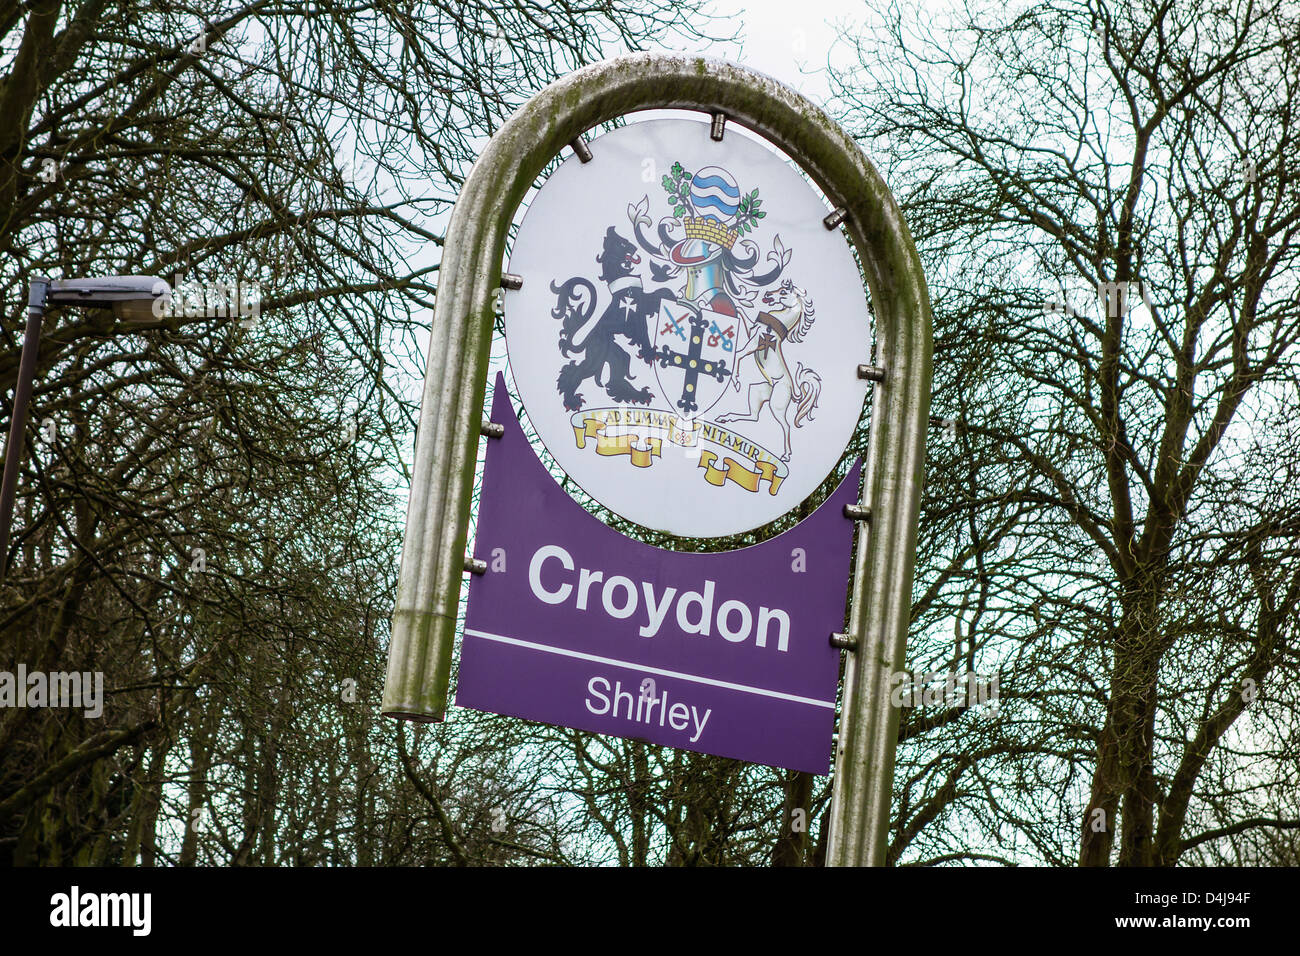 Shirley Croydon South London England - Stock Image